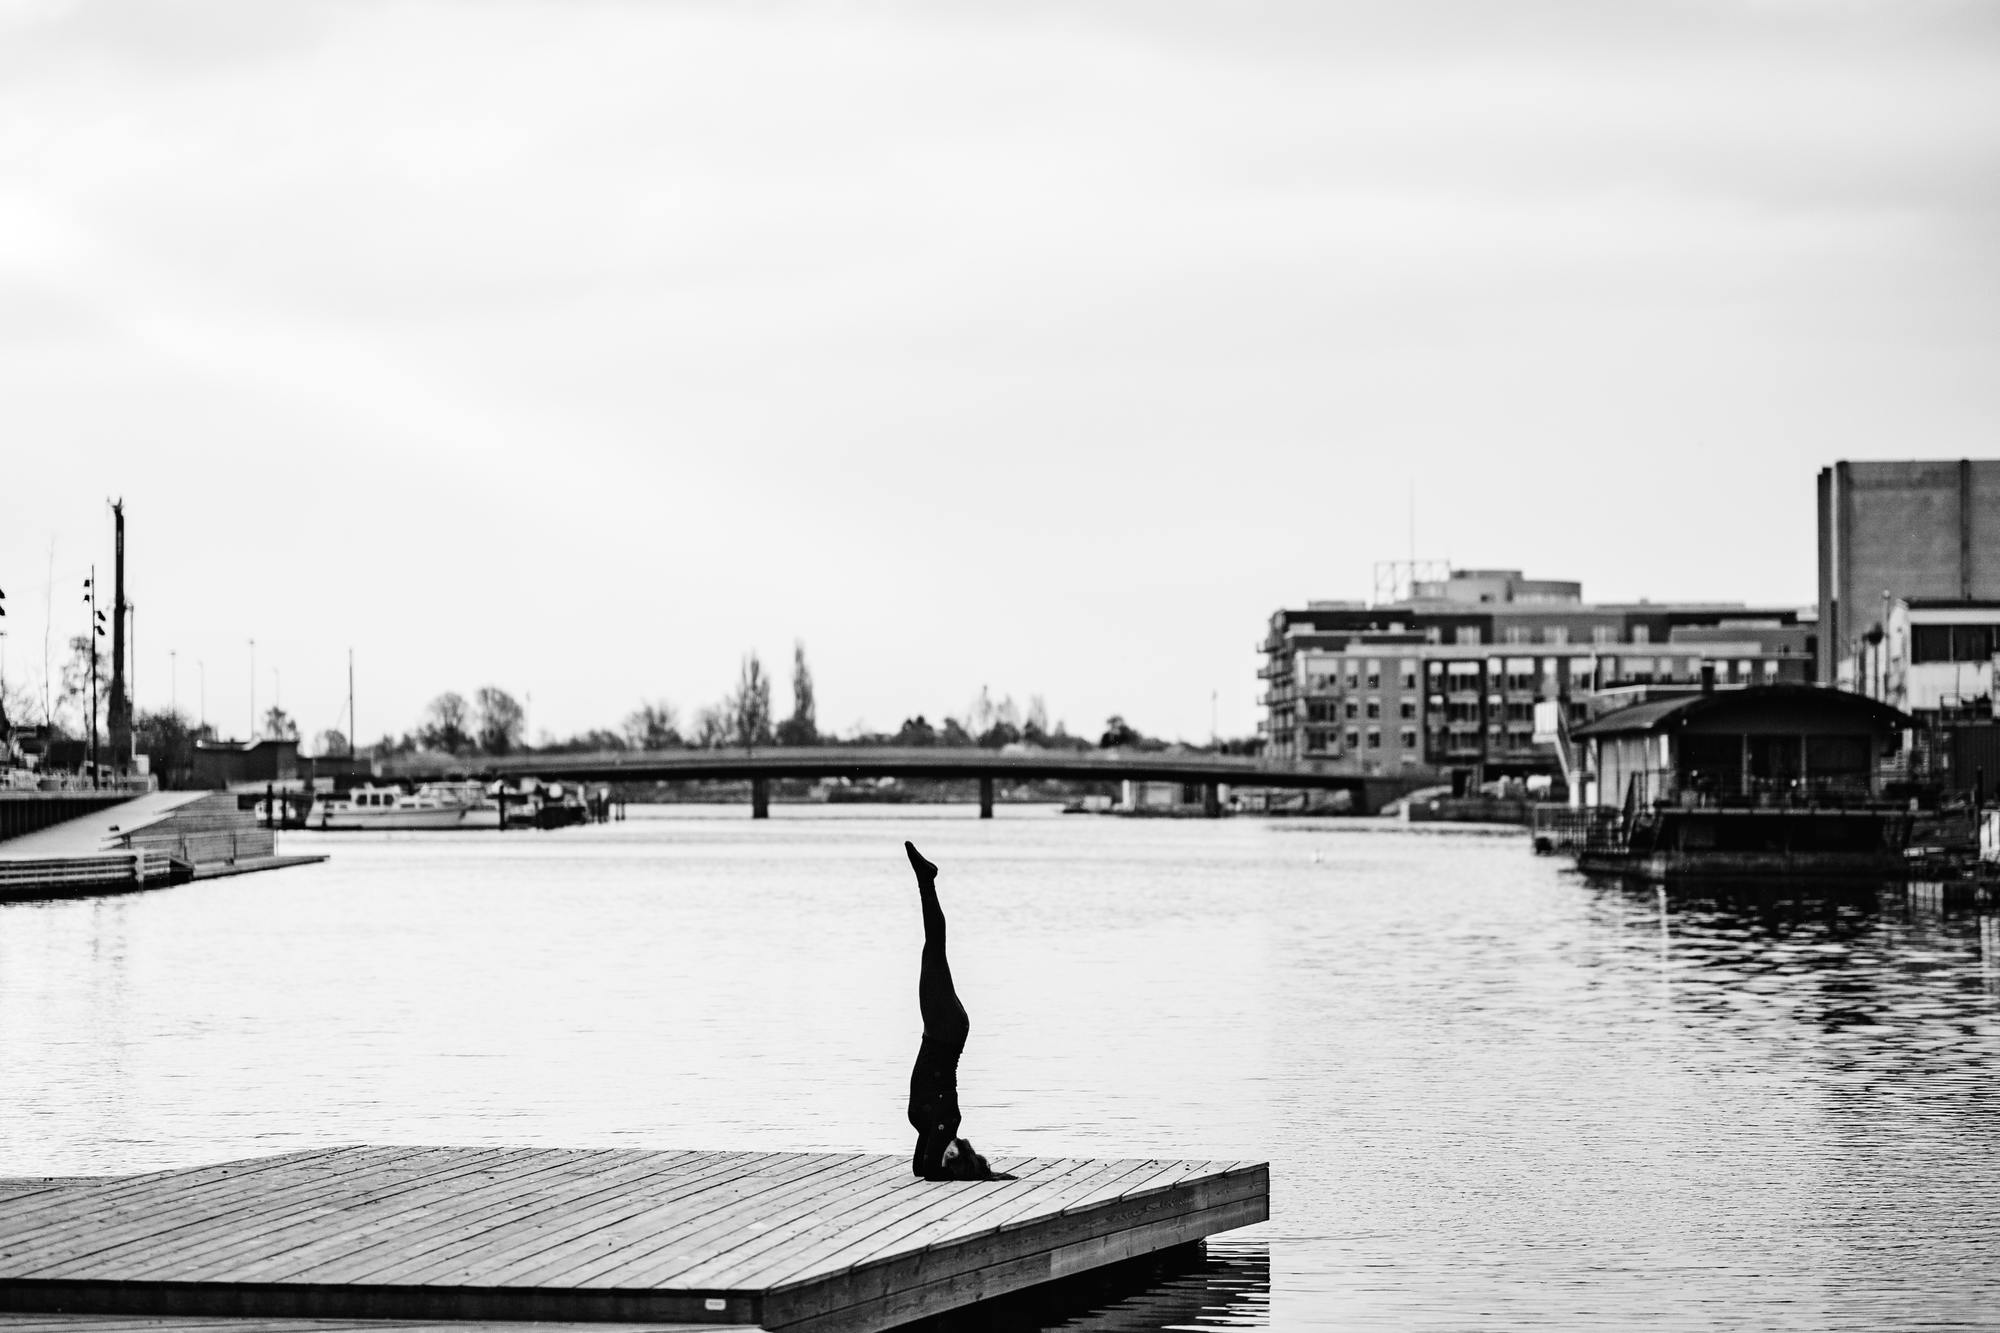 urban-yoga-photoshoot-copenhagen-silhouettes-poses-08